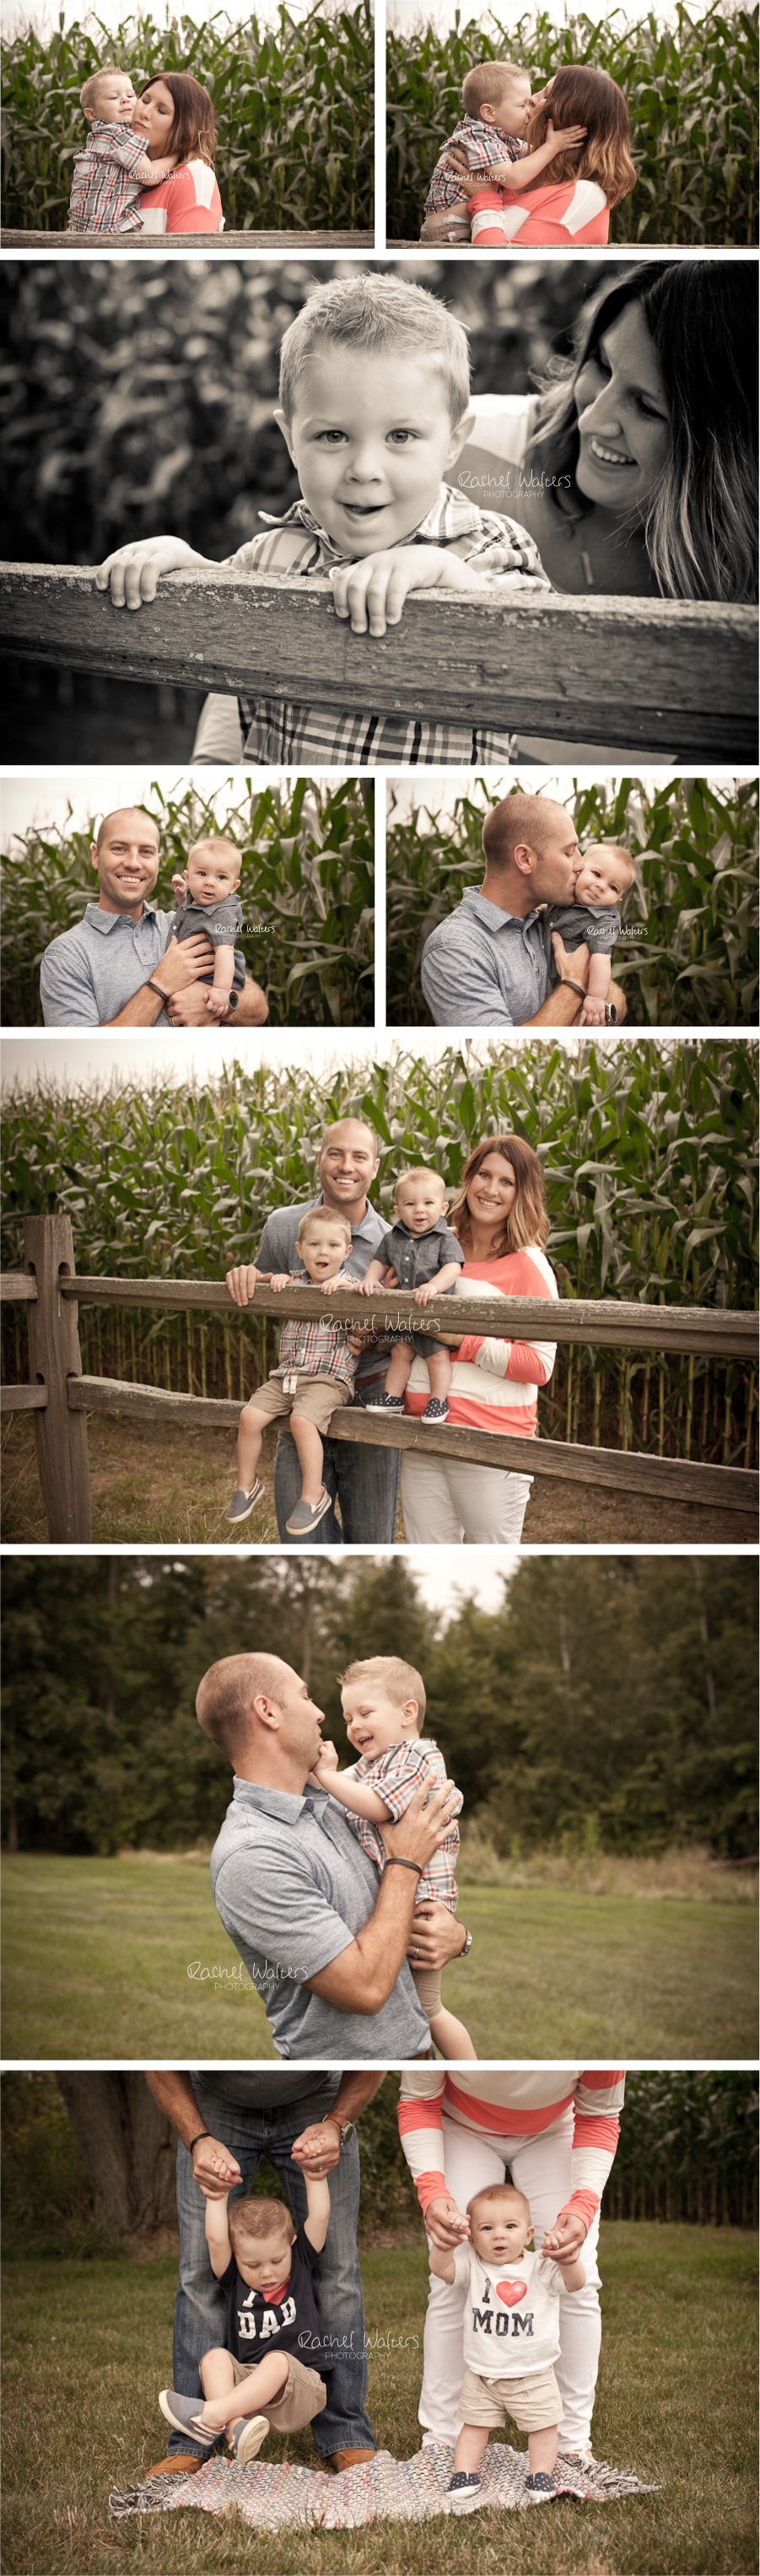 Macomb County Michigan Photographer